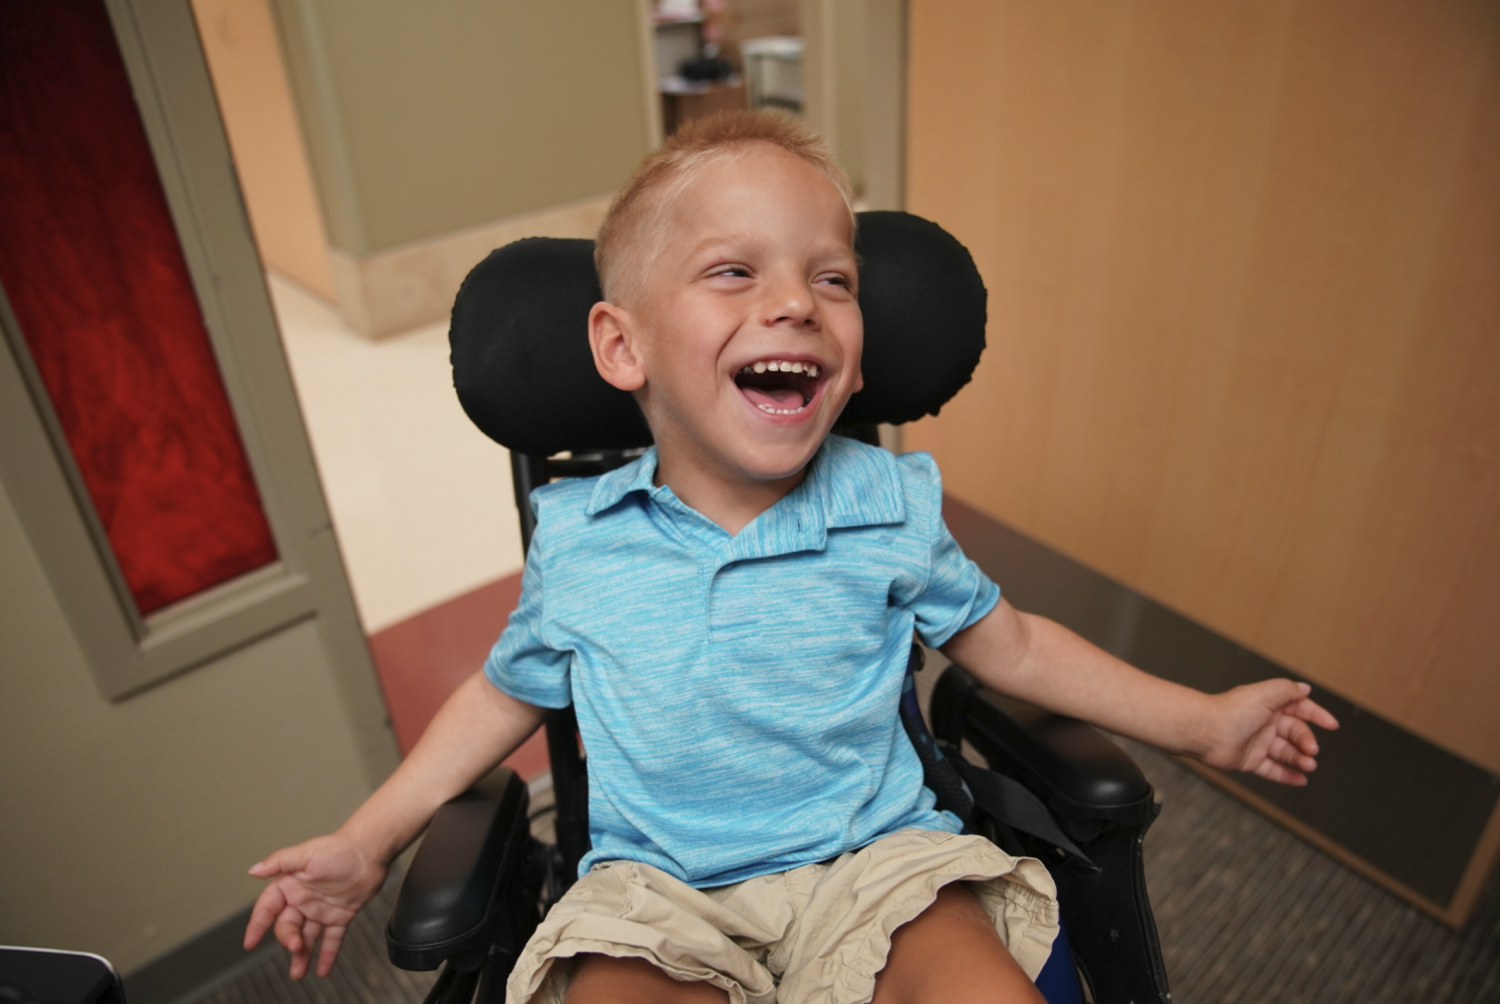 HarrisonClausnitzer, 5, from Lakeville, MNis the ambassador for this year's Walk and Roll to raise money to support Gillette Children's Specialty Healthcare.